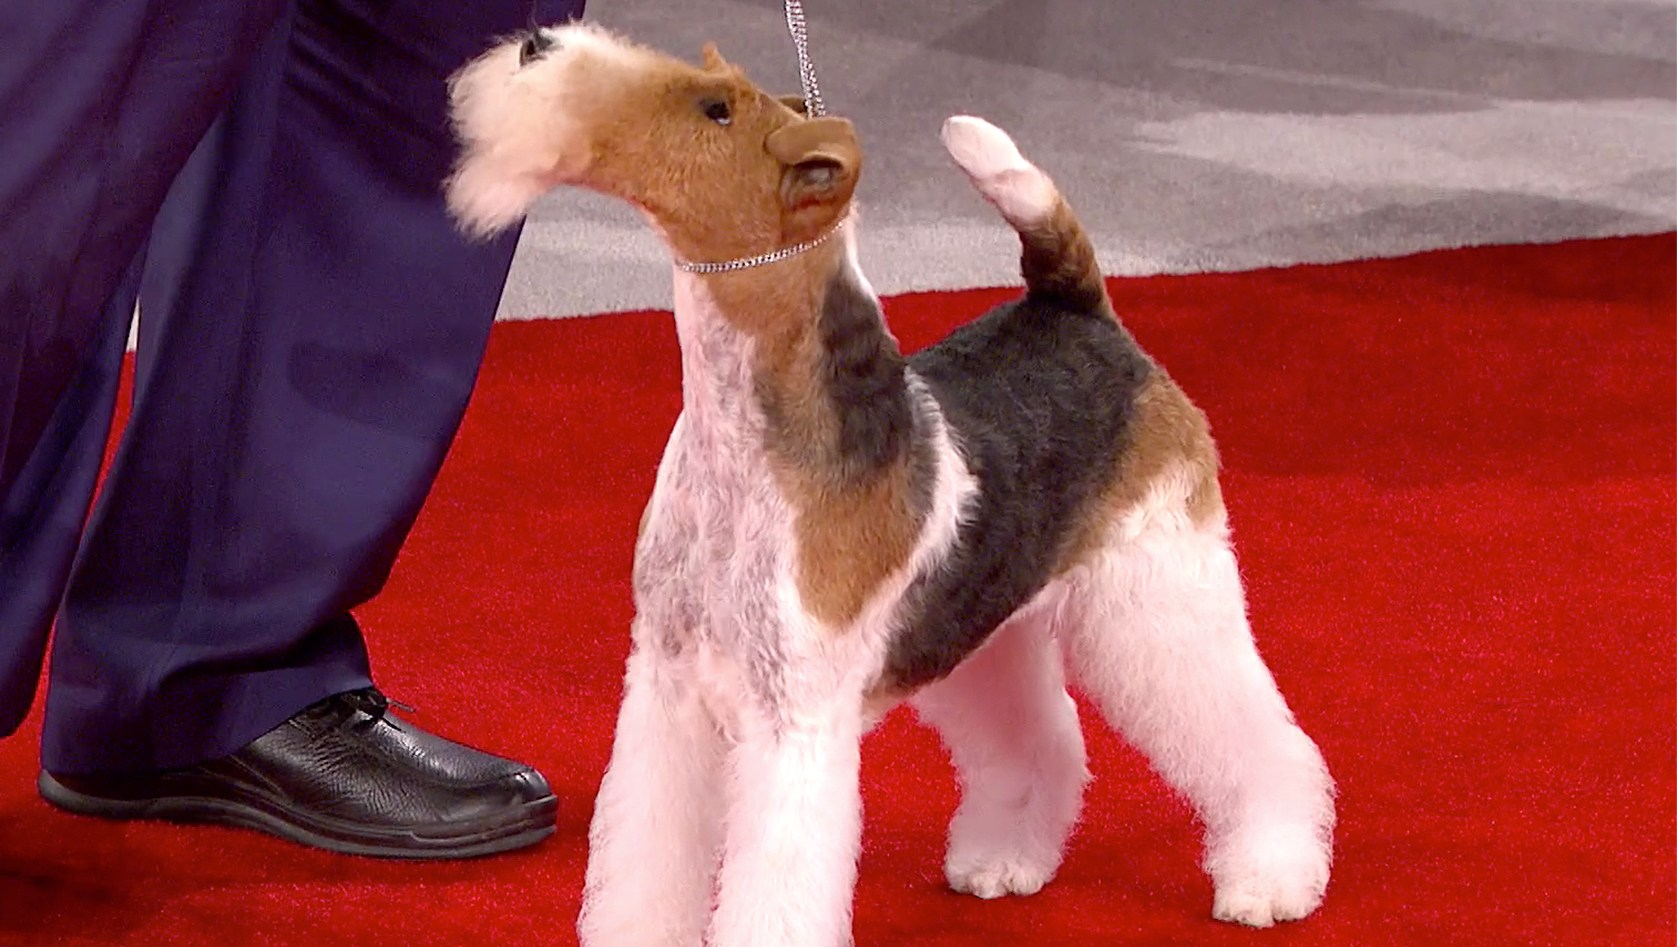 King, the winner of the 2018 Beverly Hills Dog Show